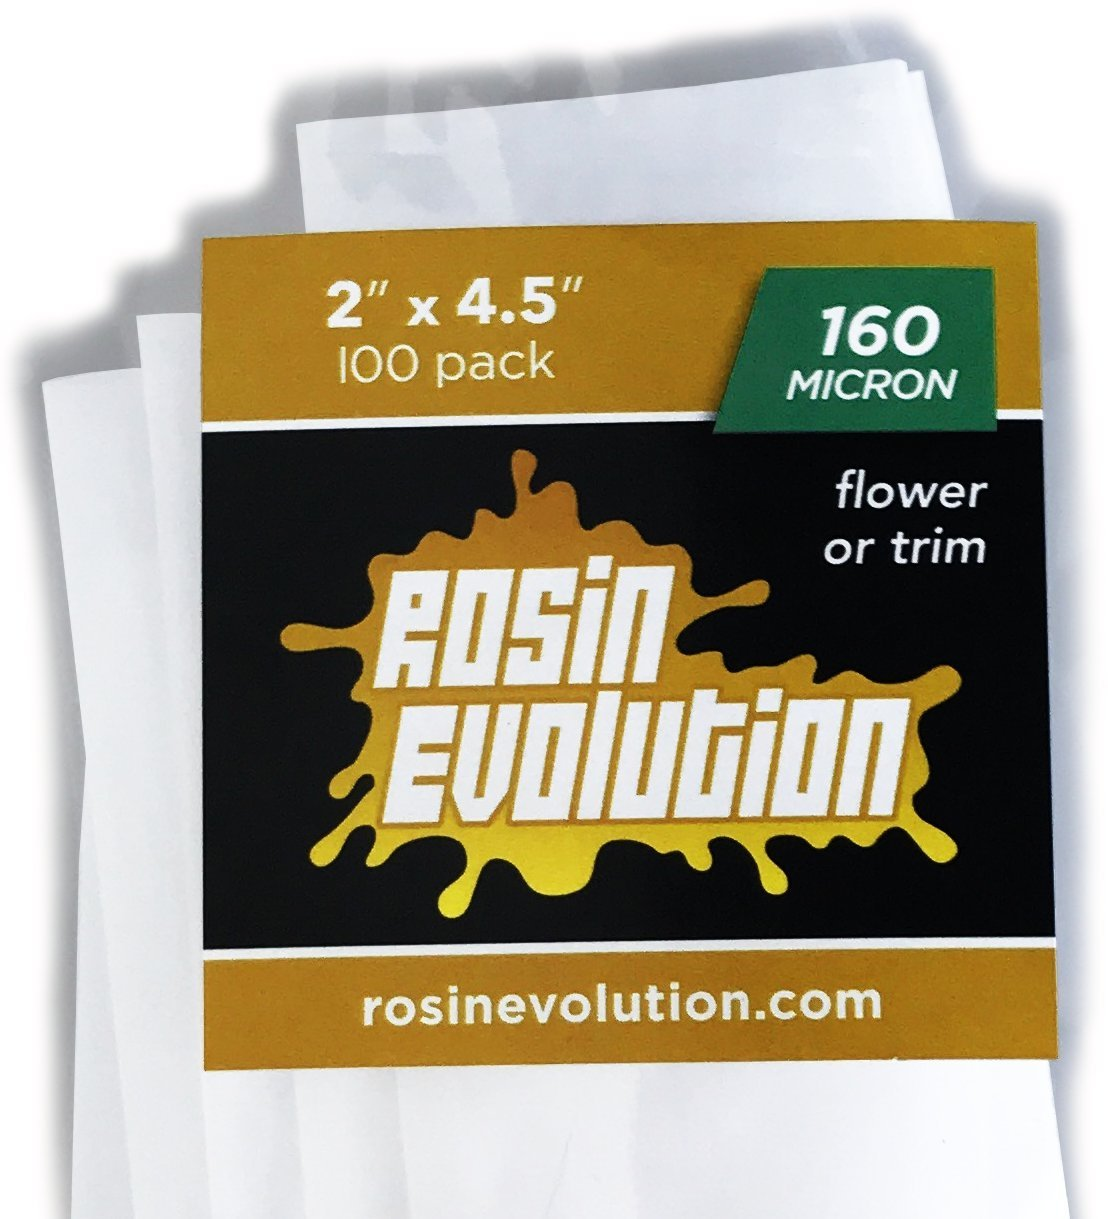 Rosin Evolution Press Bags - 160 micron screens (2'' x 4.5'') - 100 pack by Rosin Evolution